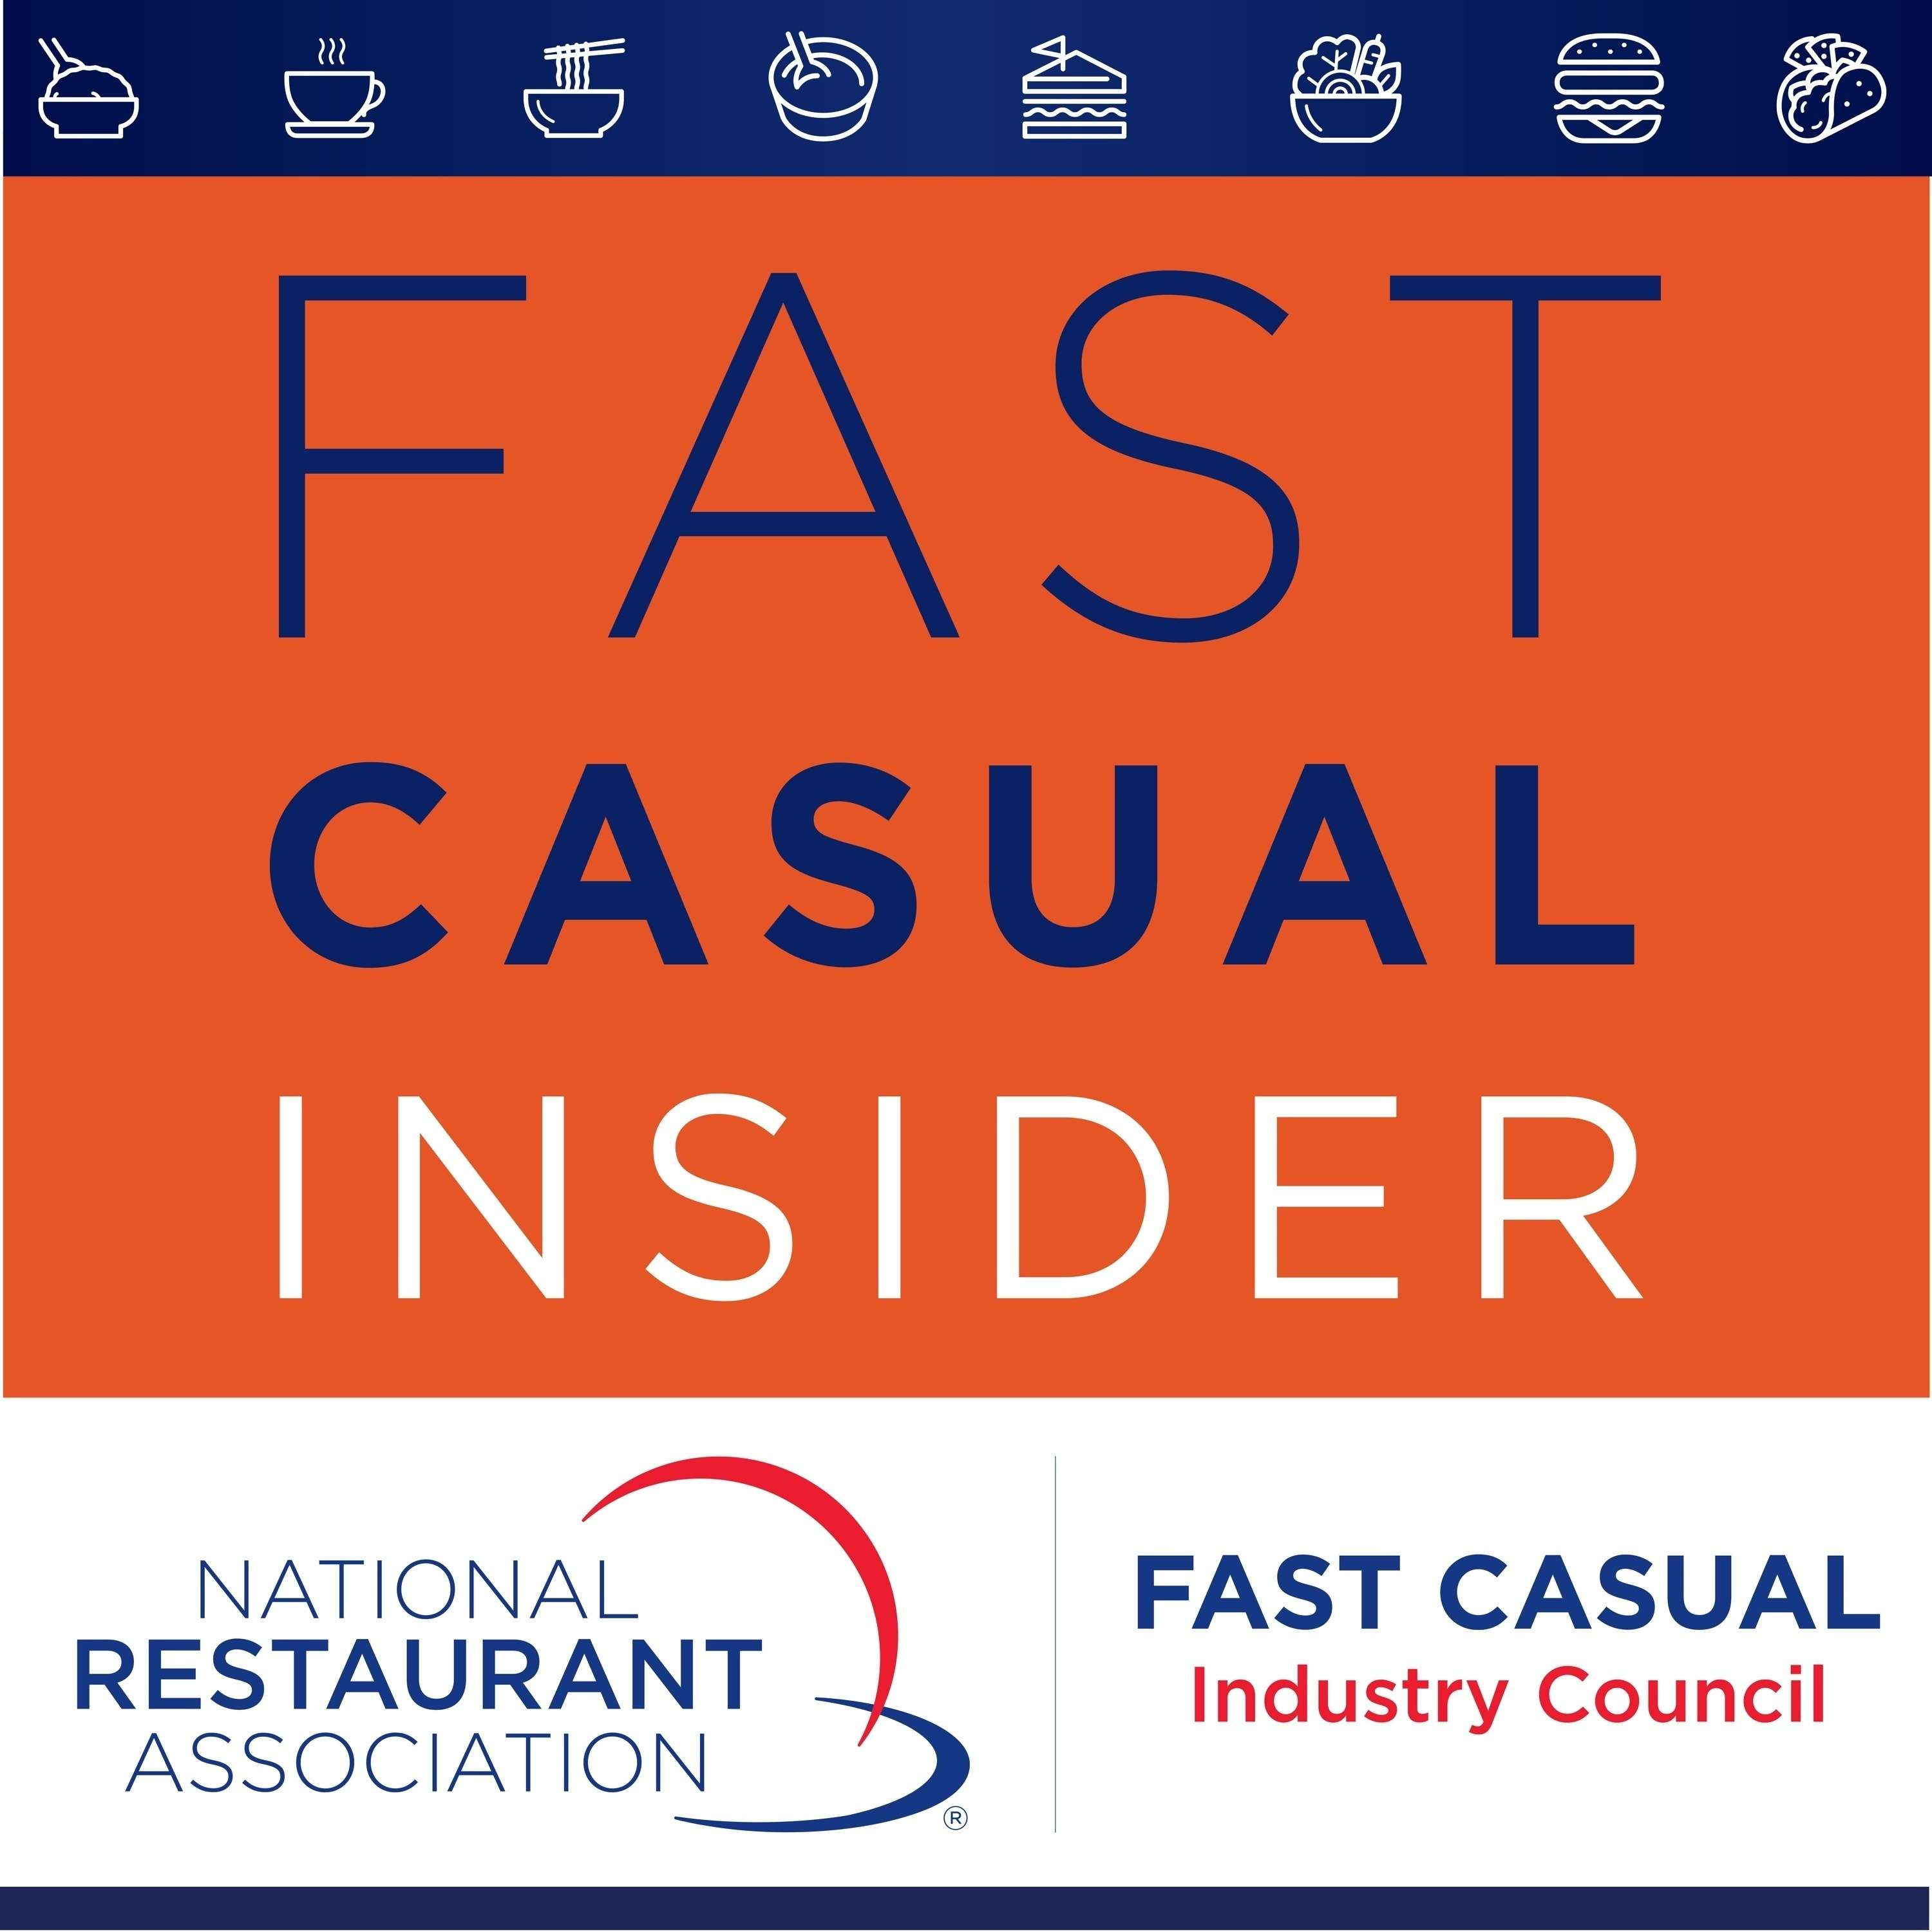 Technology's impact on Fast Casual Dining with Geoff Alexander